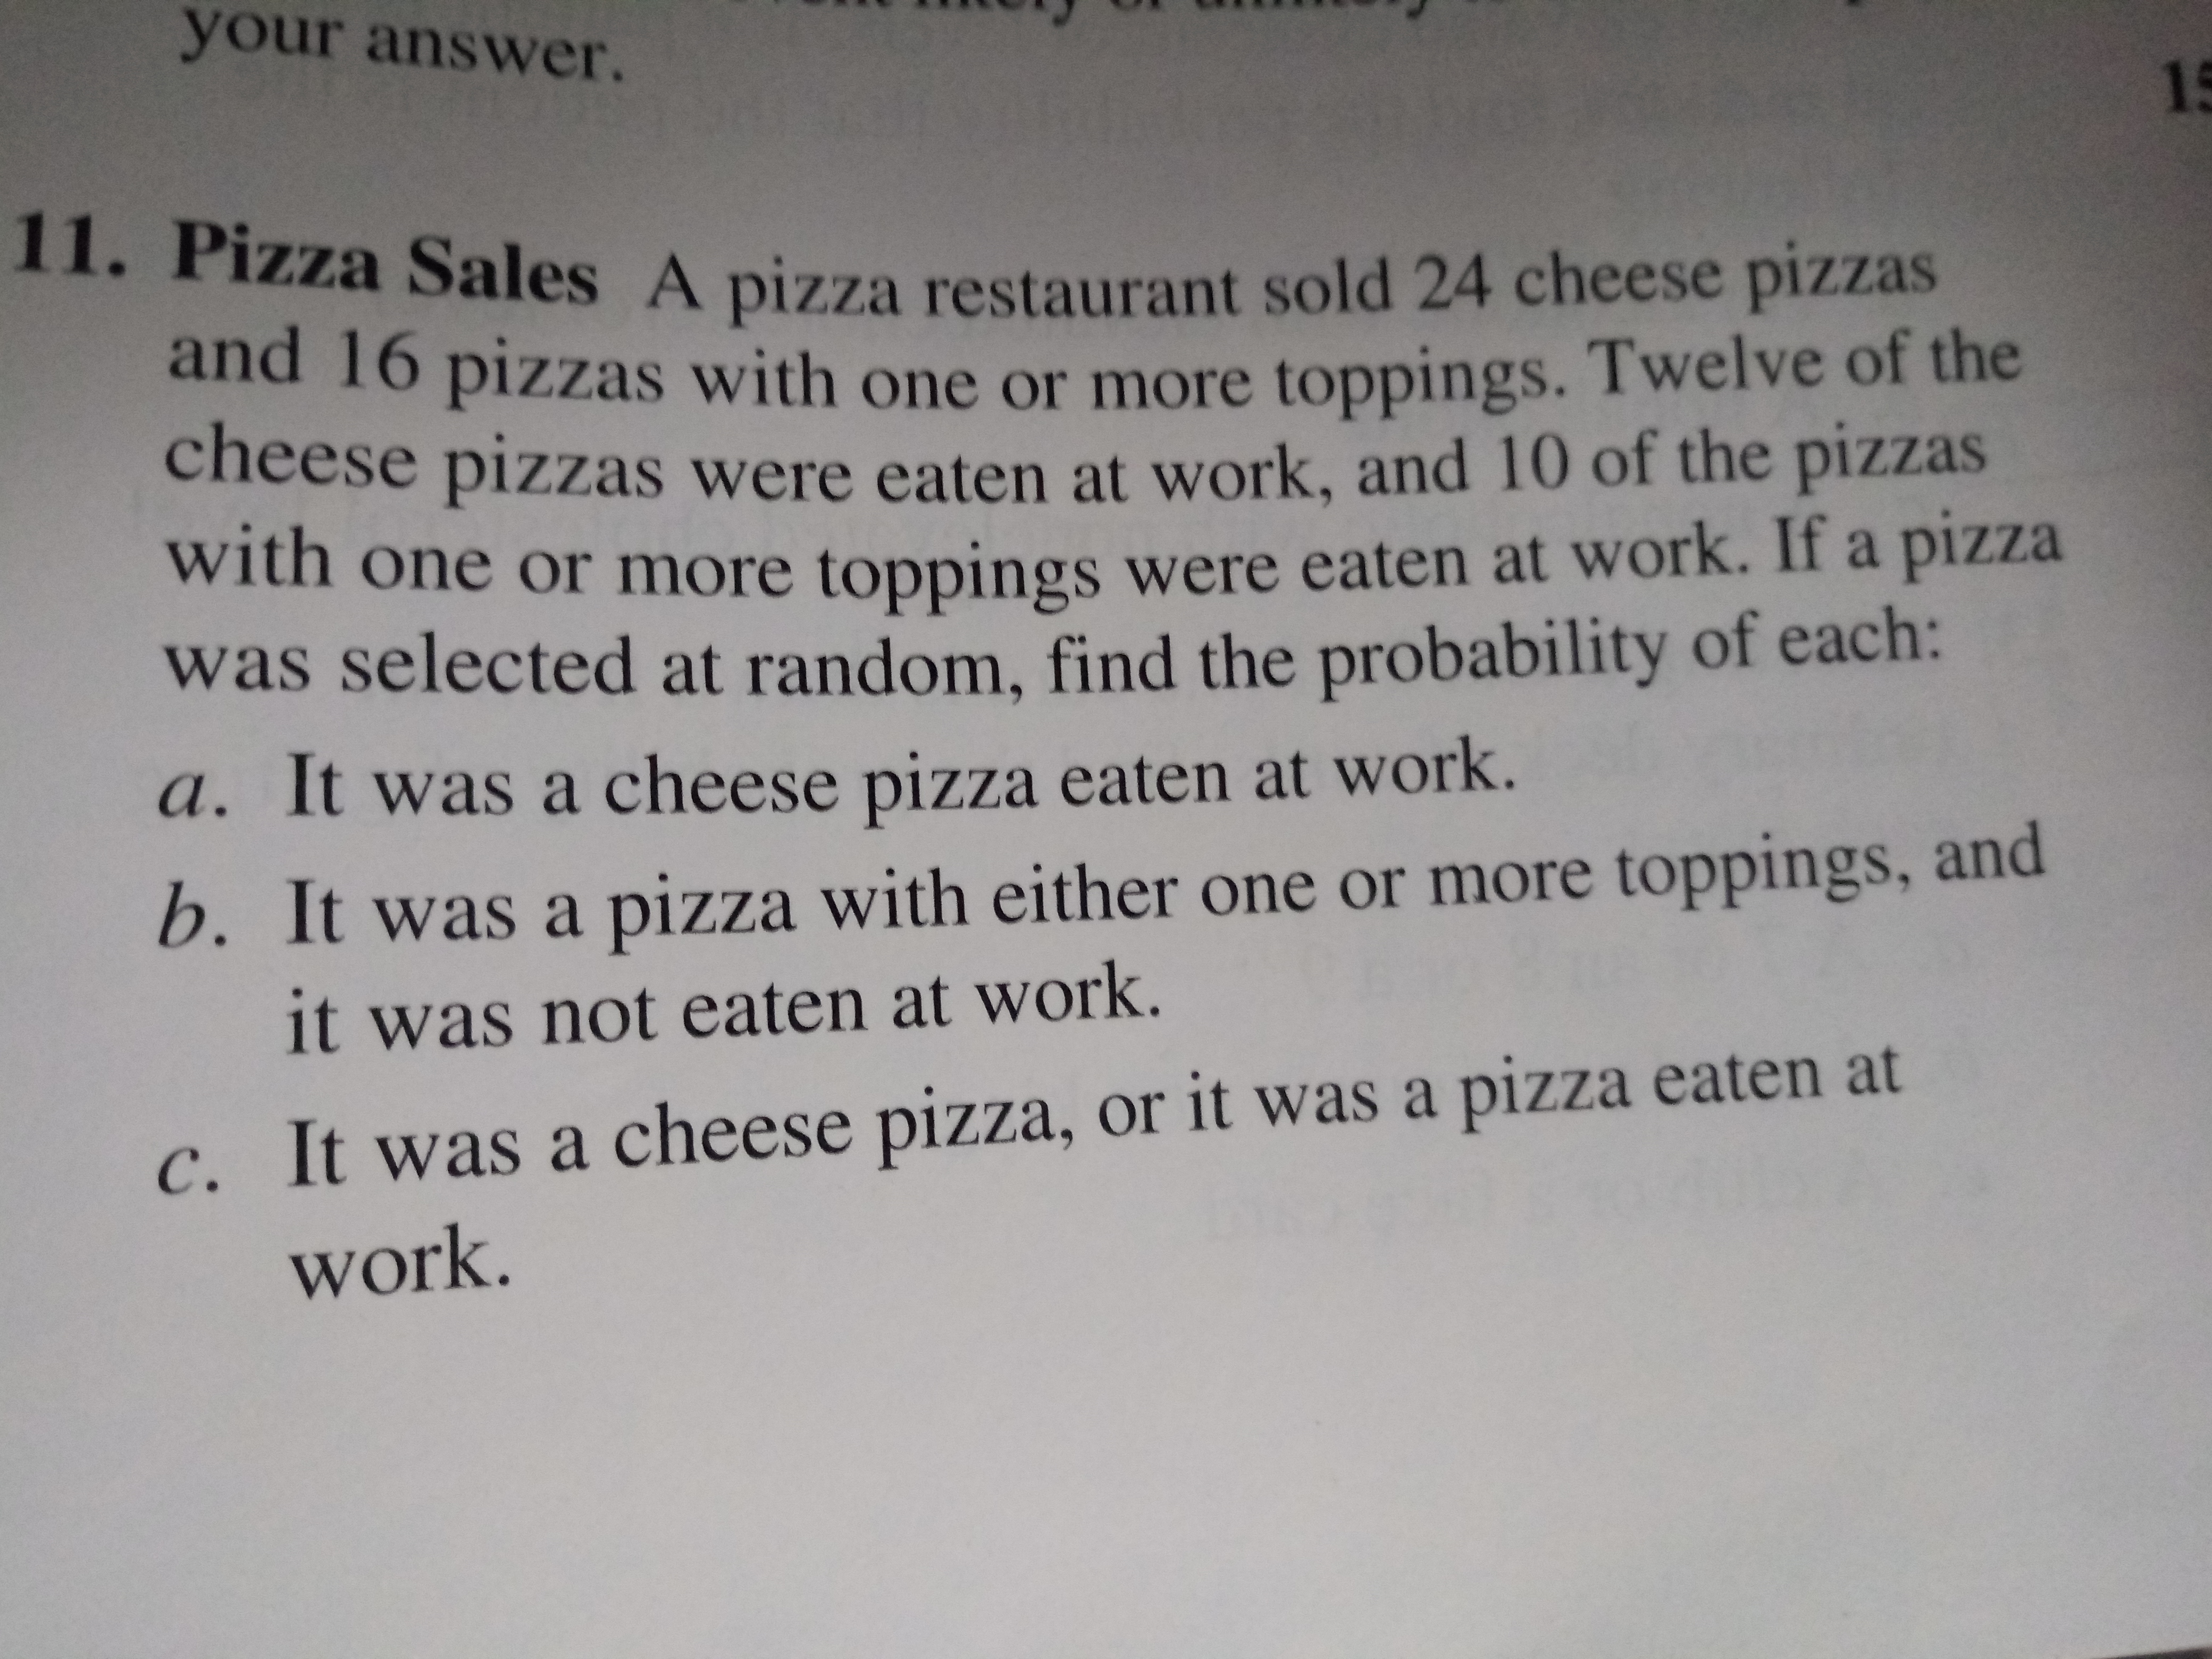 your answer. 15 Zza Sales A pizza restaurant sold 24 cheese pizzas and 16 pizzas with one or more toppings. Twelve of the cheese pizzas were eaten at work, and 10 of the pizzas with one or more toppings were eaten at work. If a pizza was selected at random, find the probability of each: a. It was a cheese pizza eaten at work. b. It was a pizza with either one or more toppings, and it was not eaten at work. C. It was a cheese pizza, or it was a pizZza eaten at work.